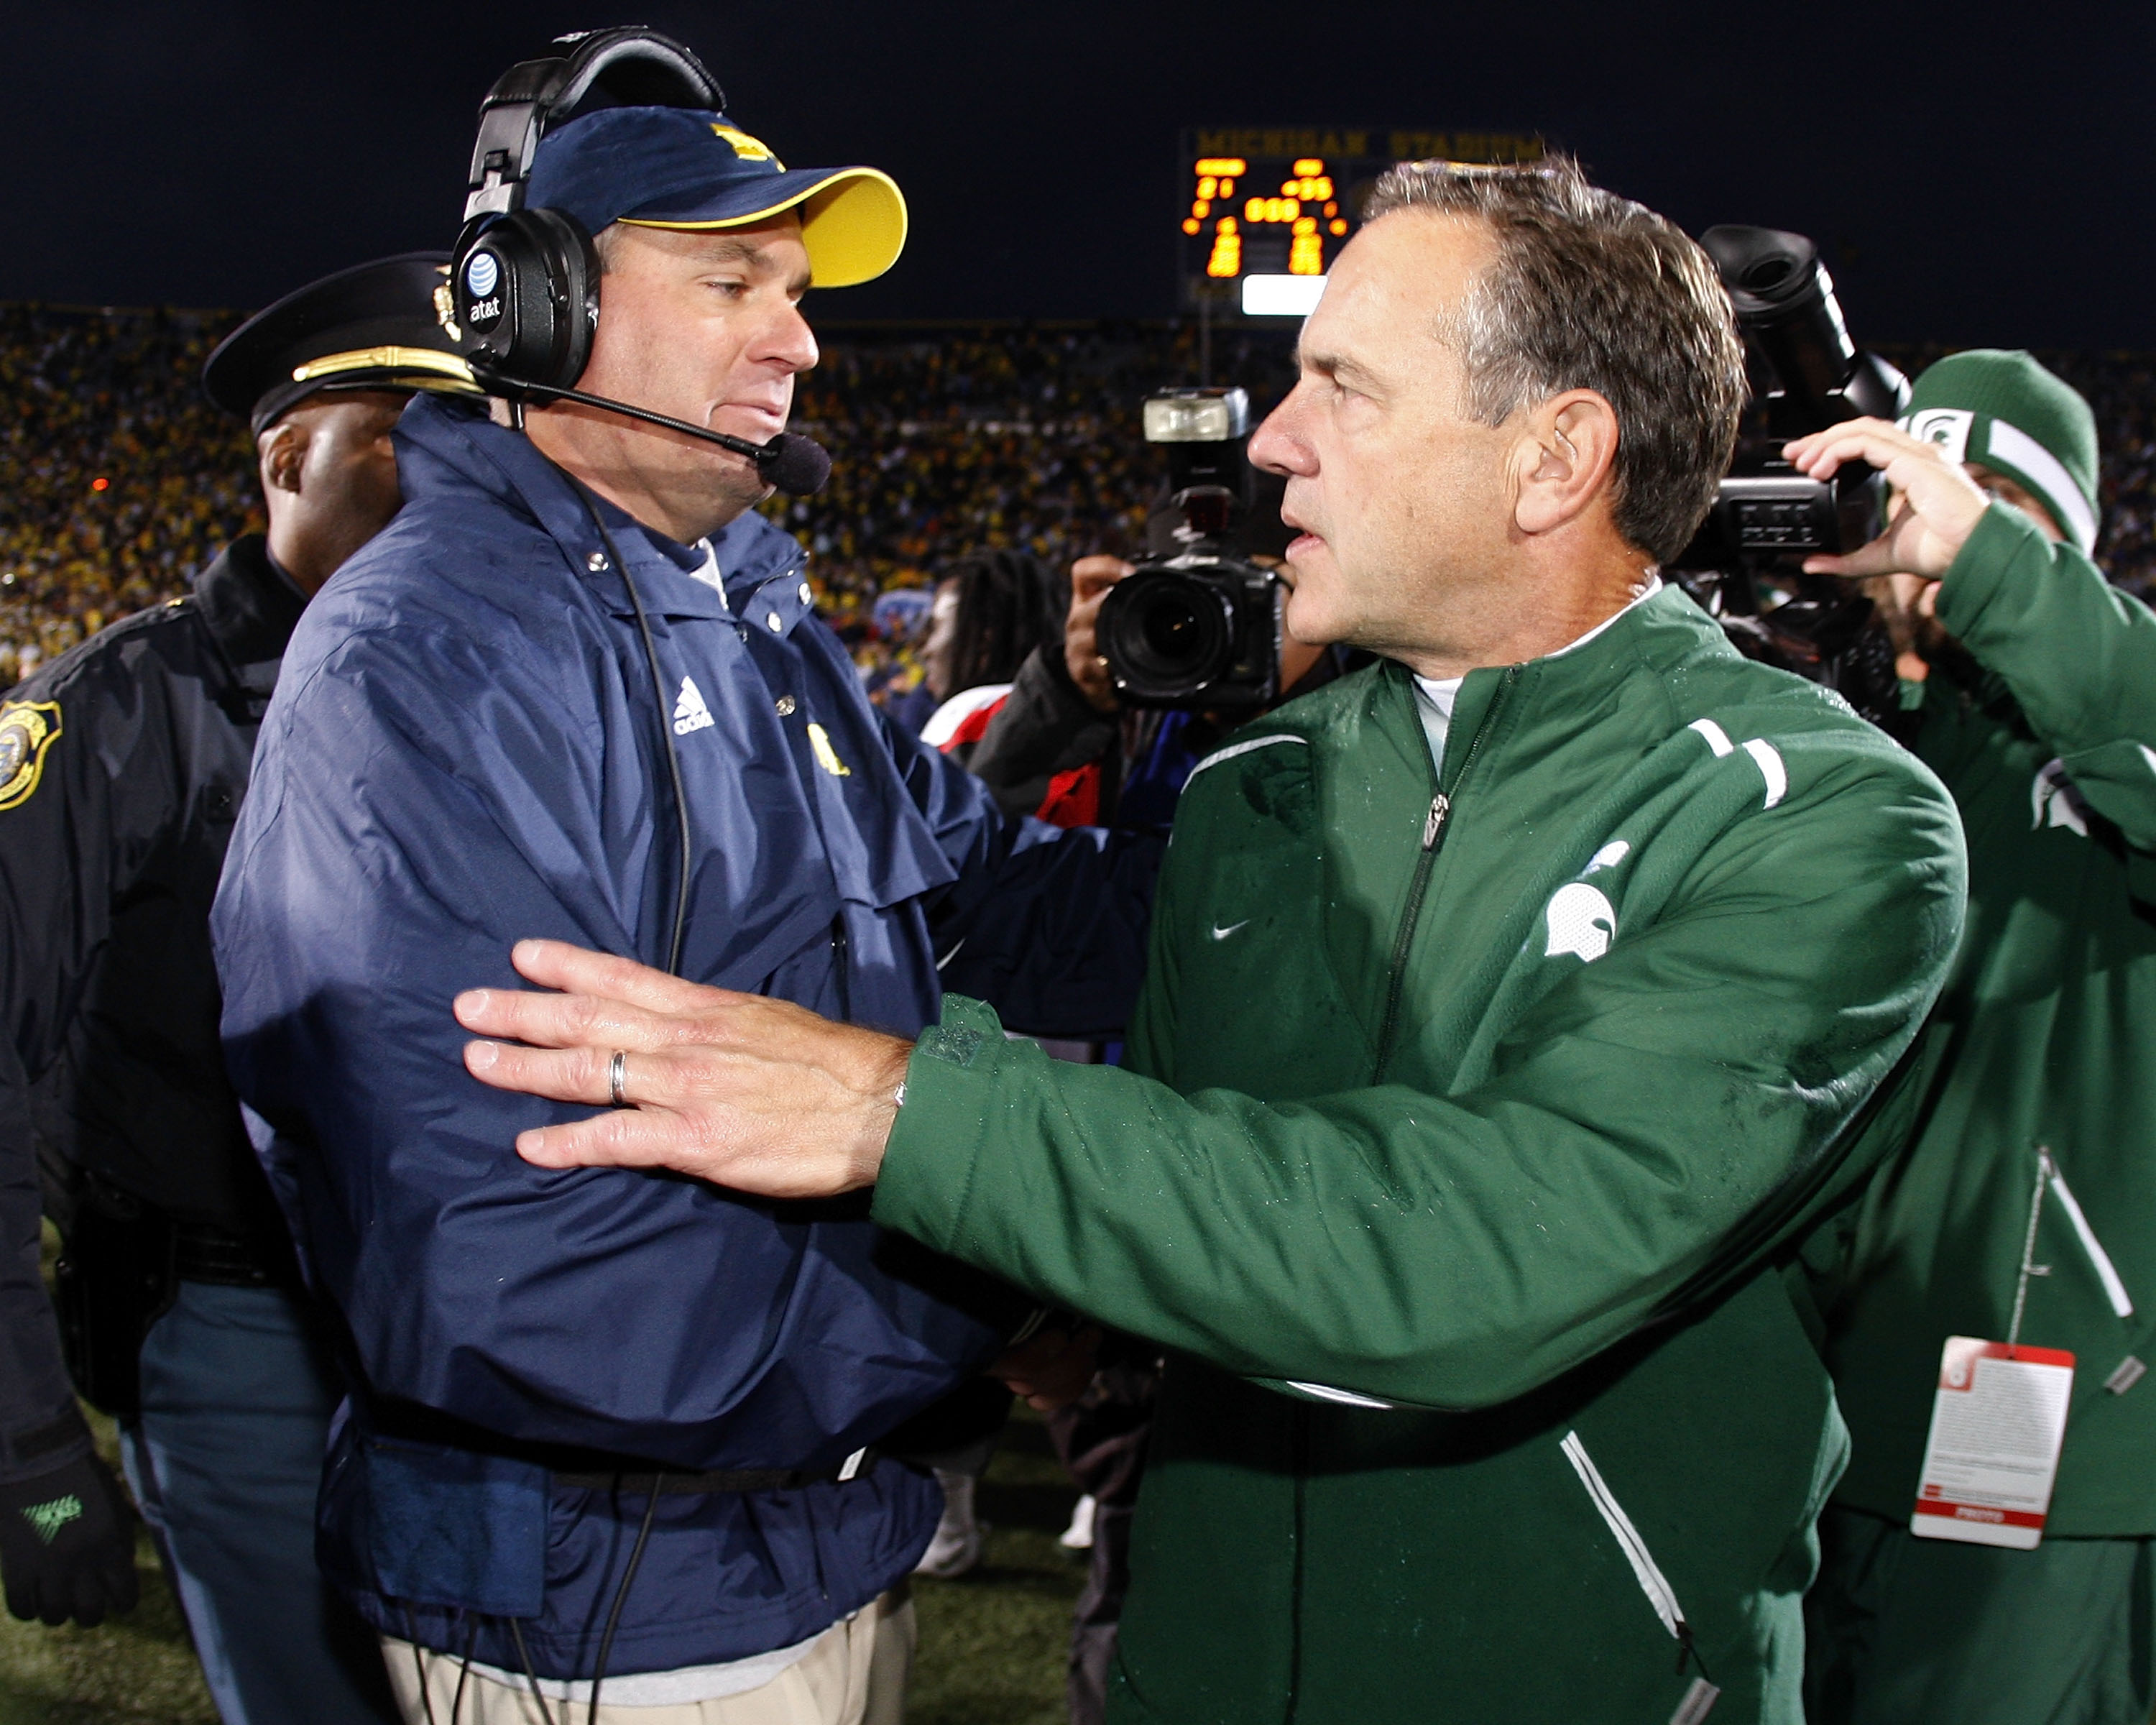 ANN ARBOR, MI - OCTOBER 25: Head coach Mark Dantonio of the Michigan State Spartans shakes hands with head coach Rich Rodriguez of the Michigan Wolverines after a Michigan State 35-21 victory on October 25, 2008 at Michigan Stadium in Ann Arbor, Michigan.